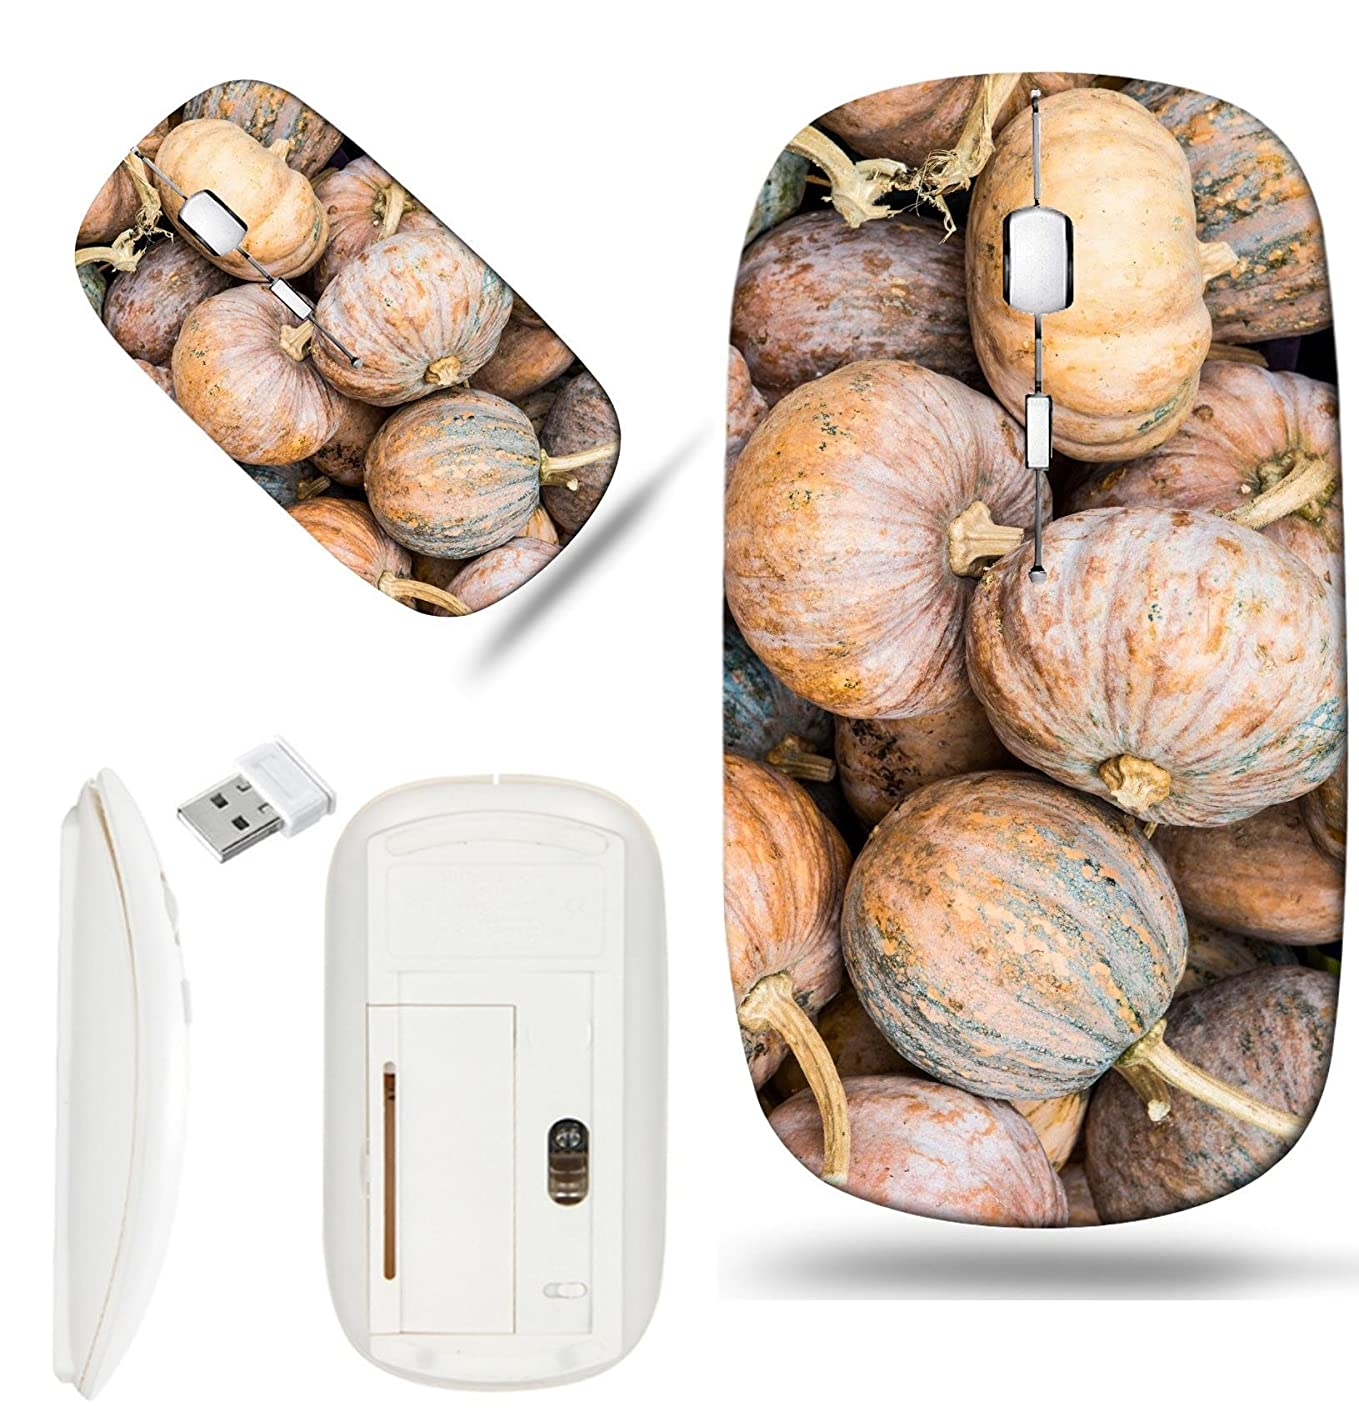 Luxlady Wireless Mouse White Base Travel 2.4G Wireless Mice with USB Receiver, 1000 DPI for notebook, pc, laptop,mac design IMAGE ID: 34431117 Fresh pumpkins on sale stand Thailand svlrydthnxx704